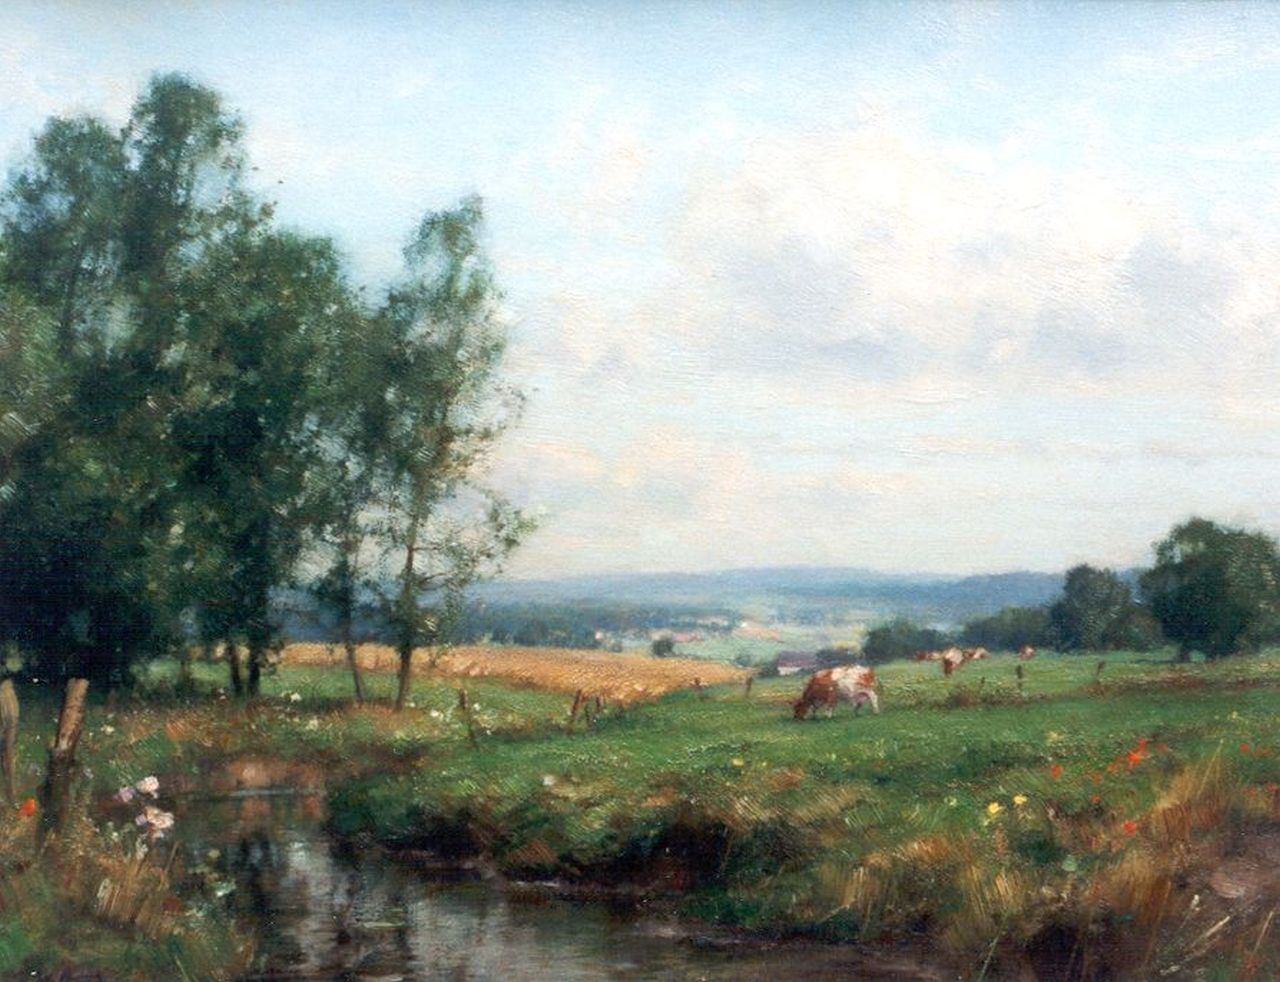 Holtrup J.  | Jan Holtrup, Landscape with cattle, Limburg, oil on canvas 35.0 x 45.0 cm, signed l.l.